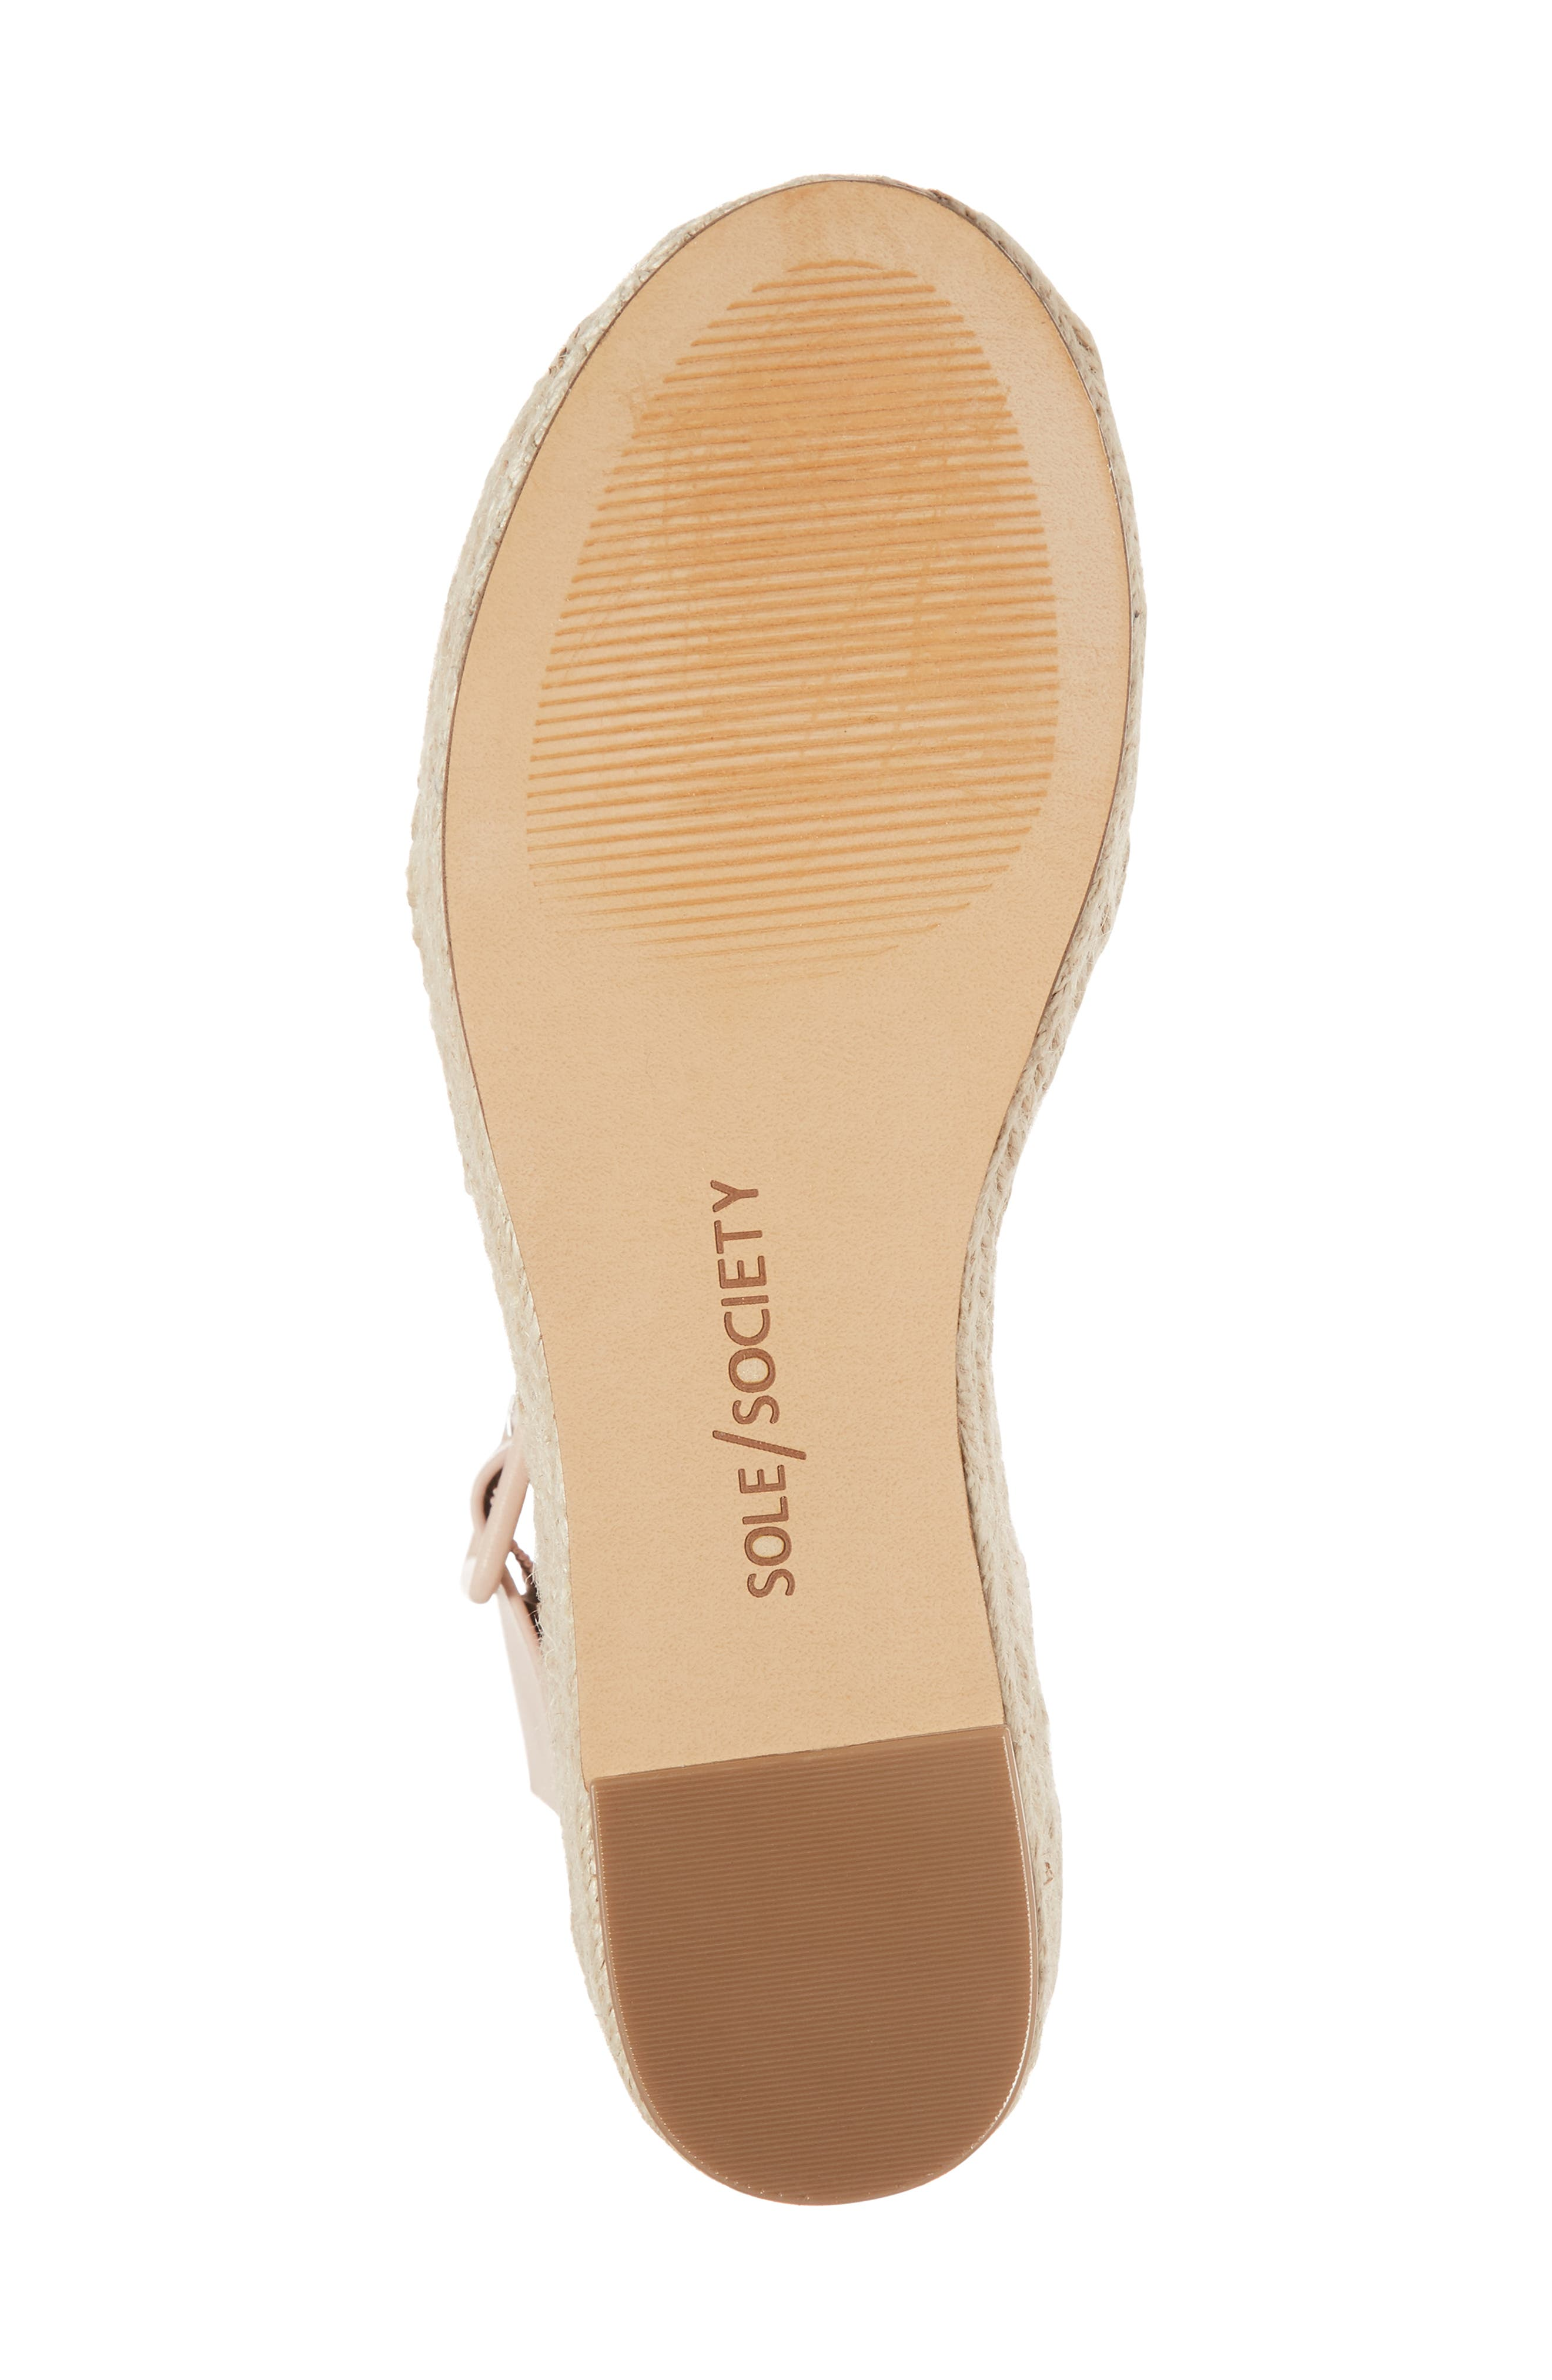 'Audrina' Platform Espadrille Sandal,                             Alternate thumbnail 6, color,                             Rose Blush